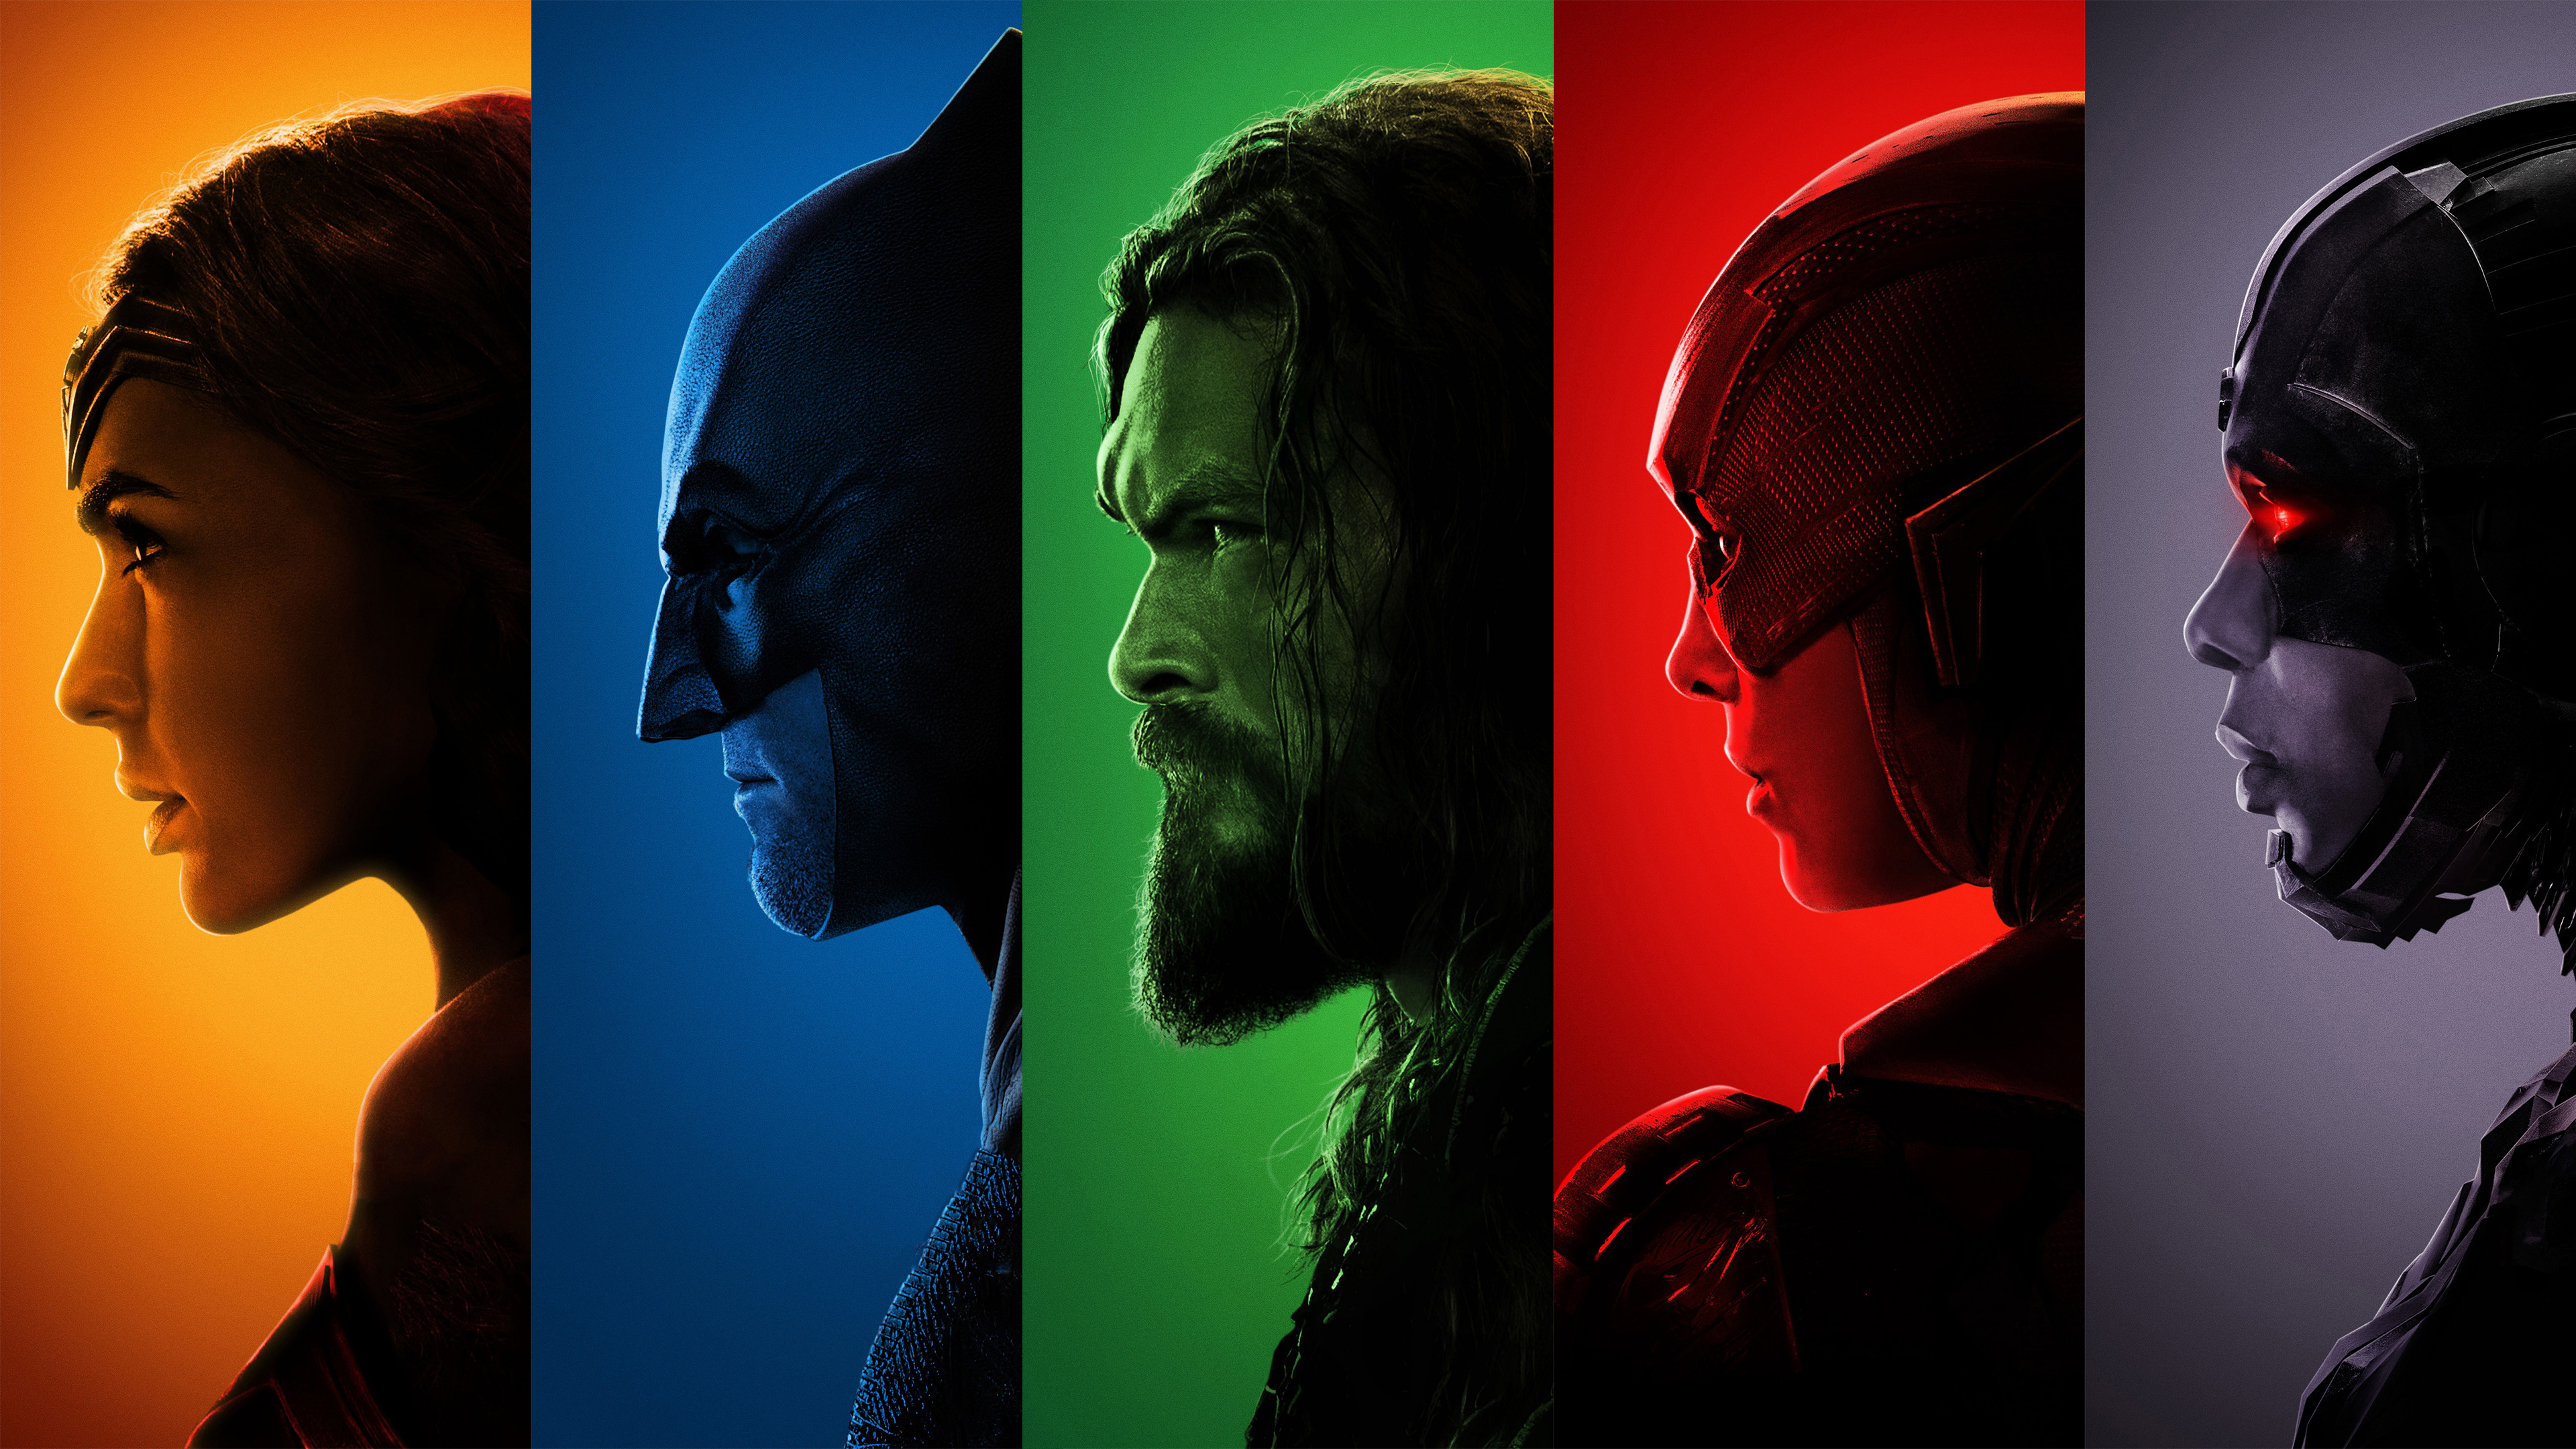 justice league 2017 superheroes 4k, hd movies, 4k wallpapers, images